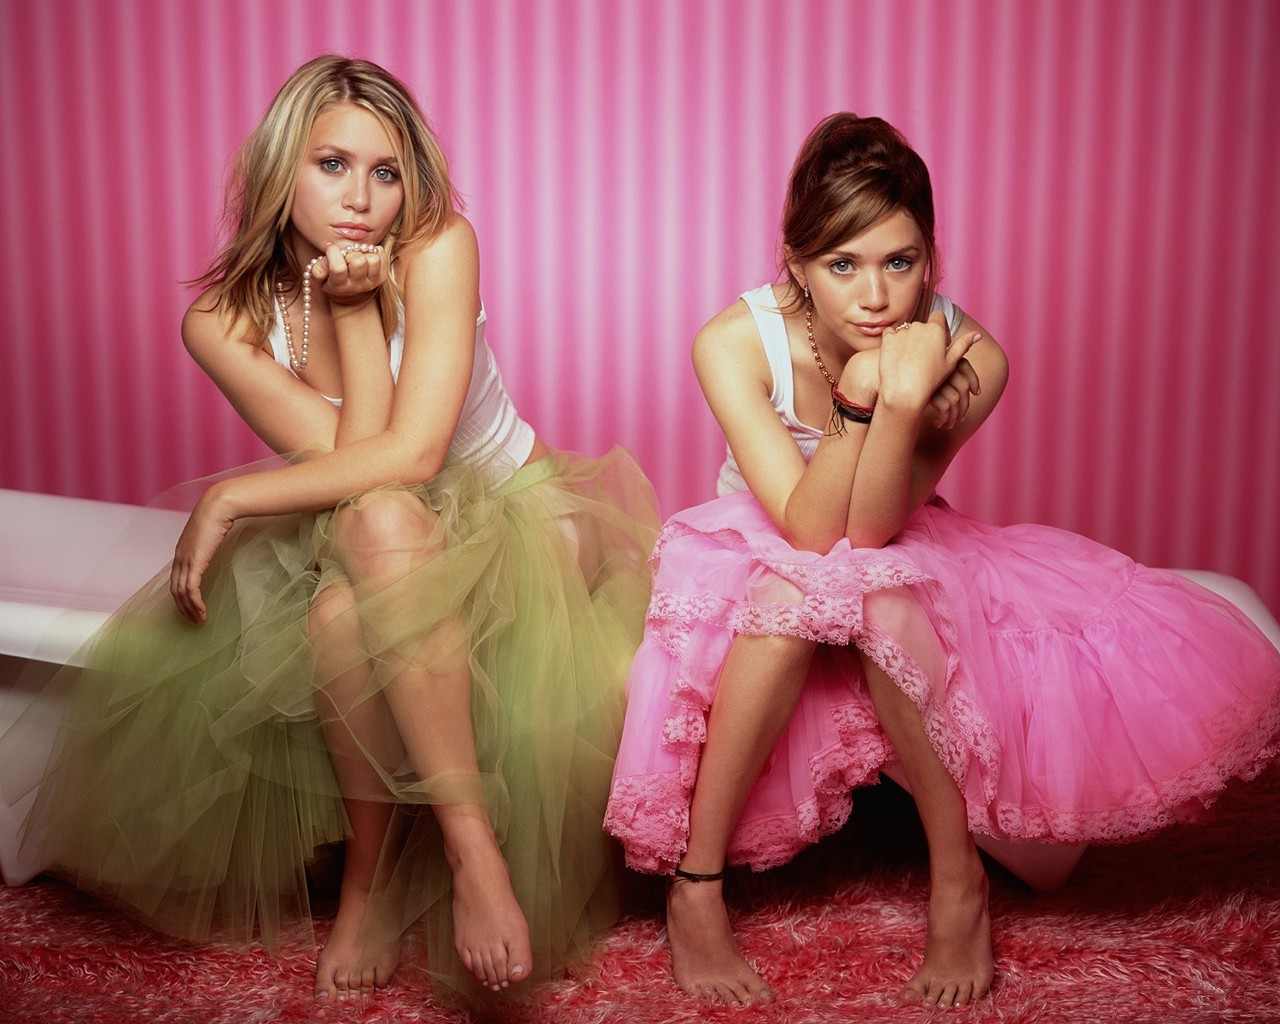 Mary-Kate and Ashley Olsen are not nude in this photo. Sorry, guys.